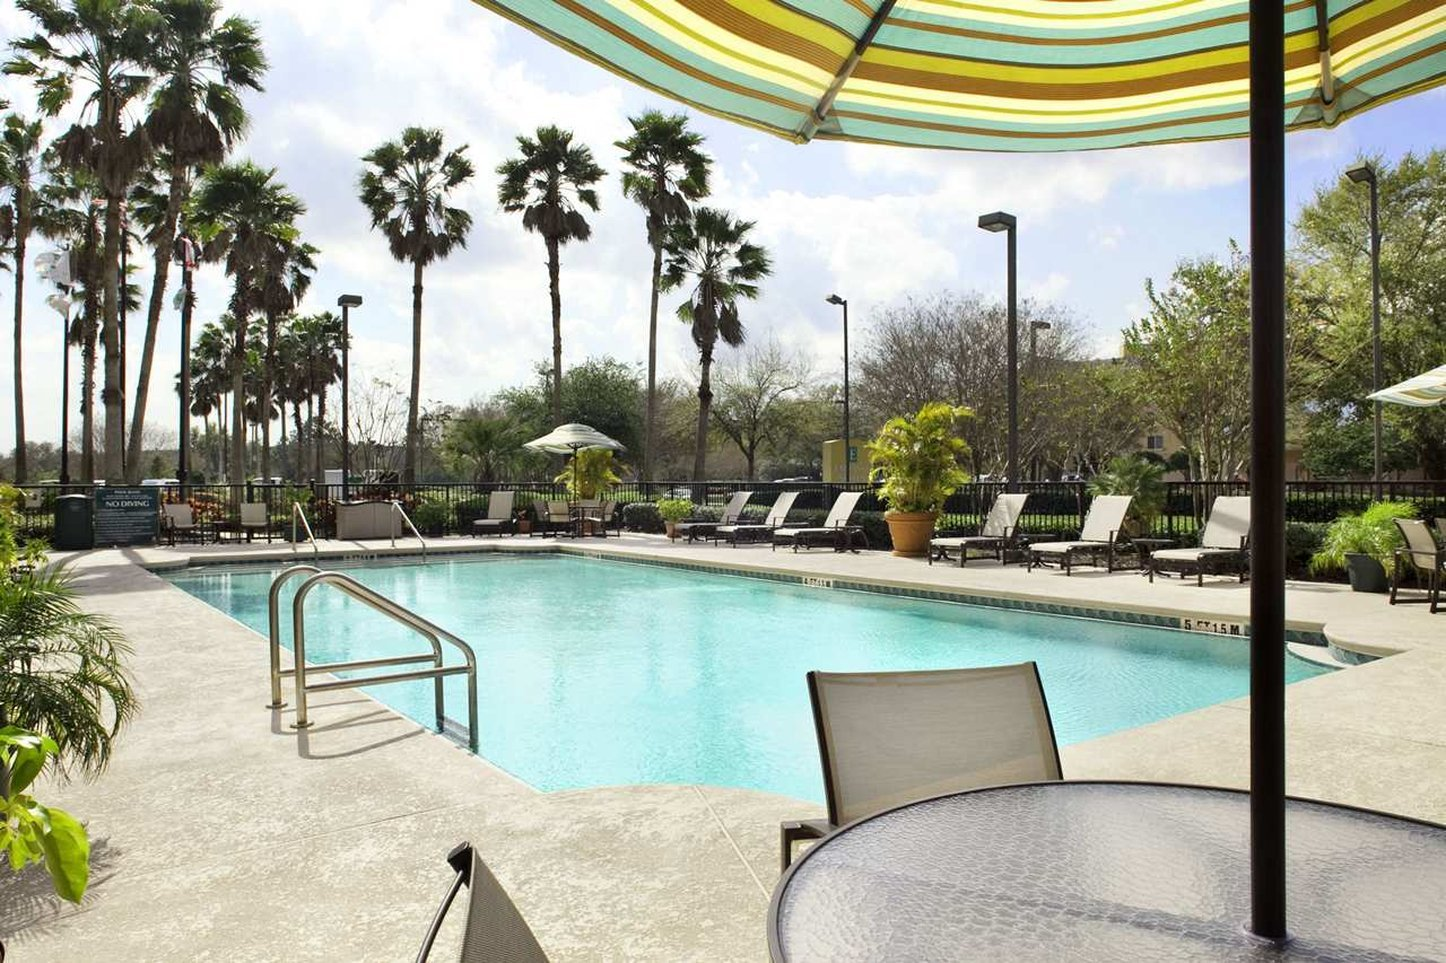 Embassy Suites by Hilton Orlando Airport